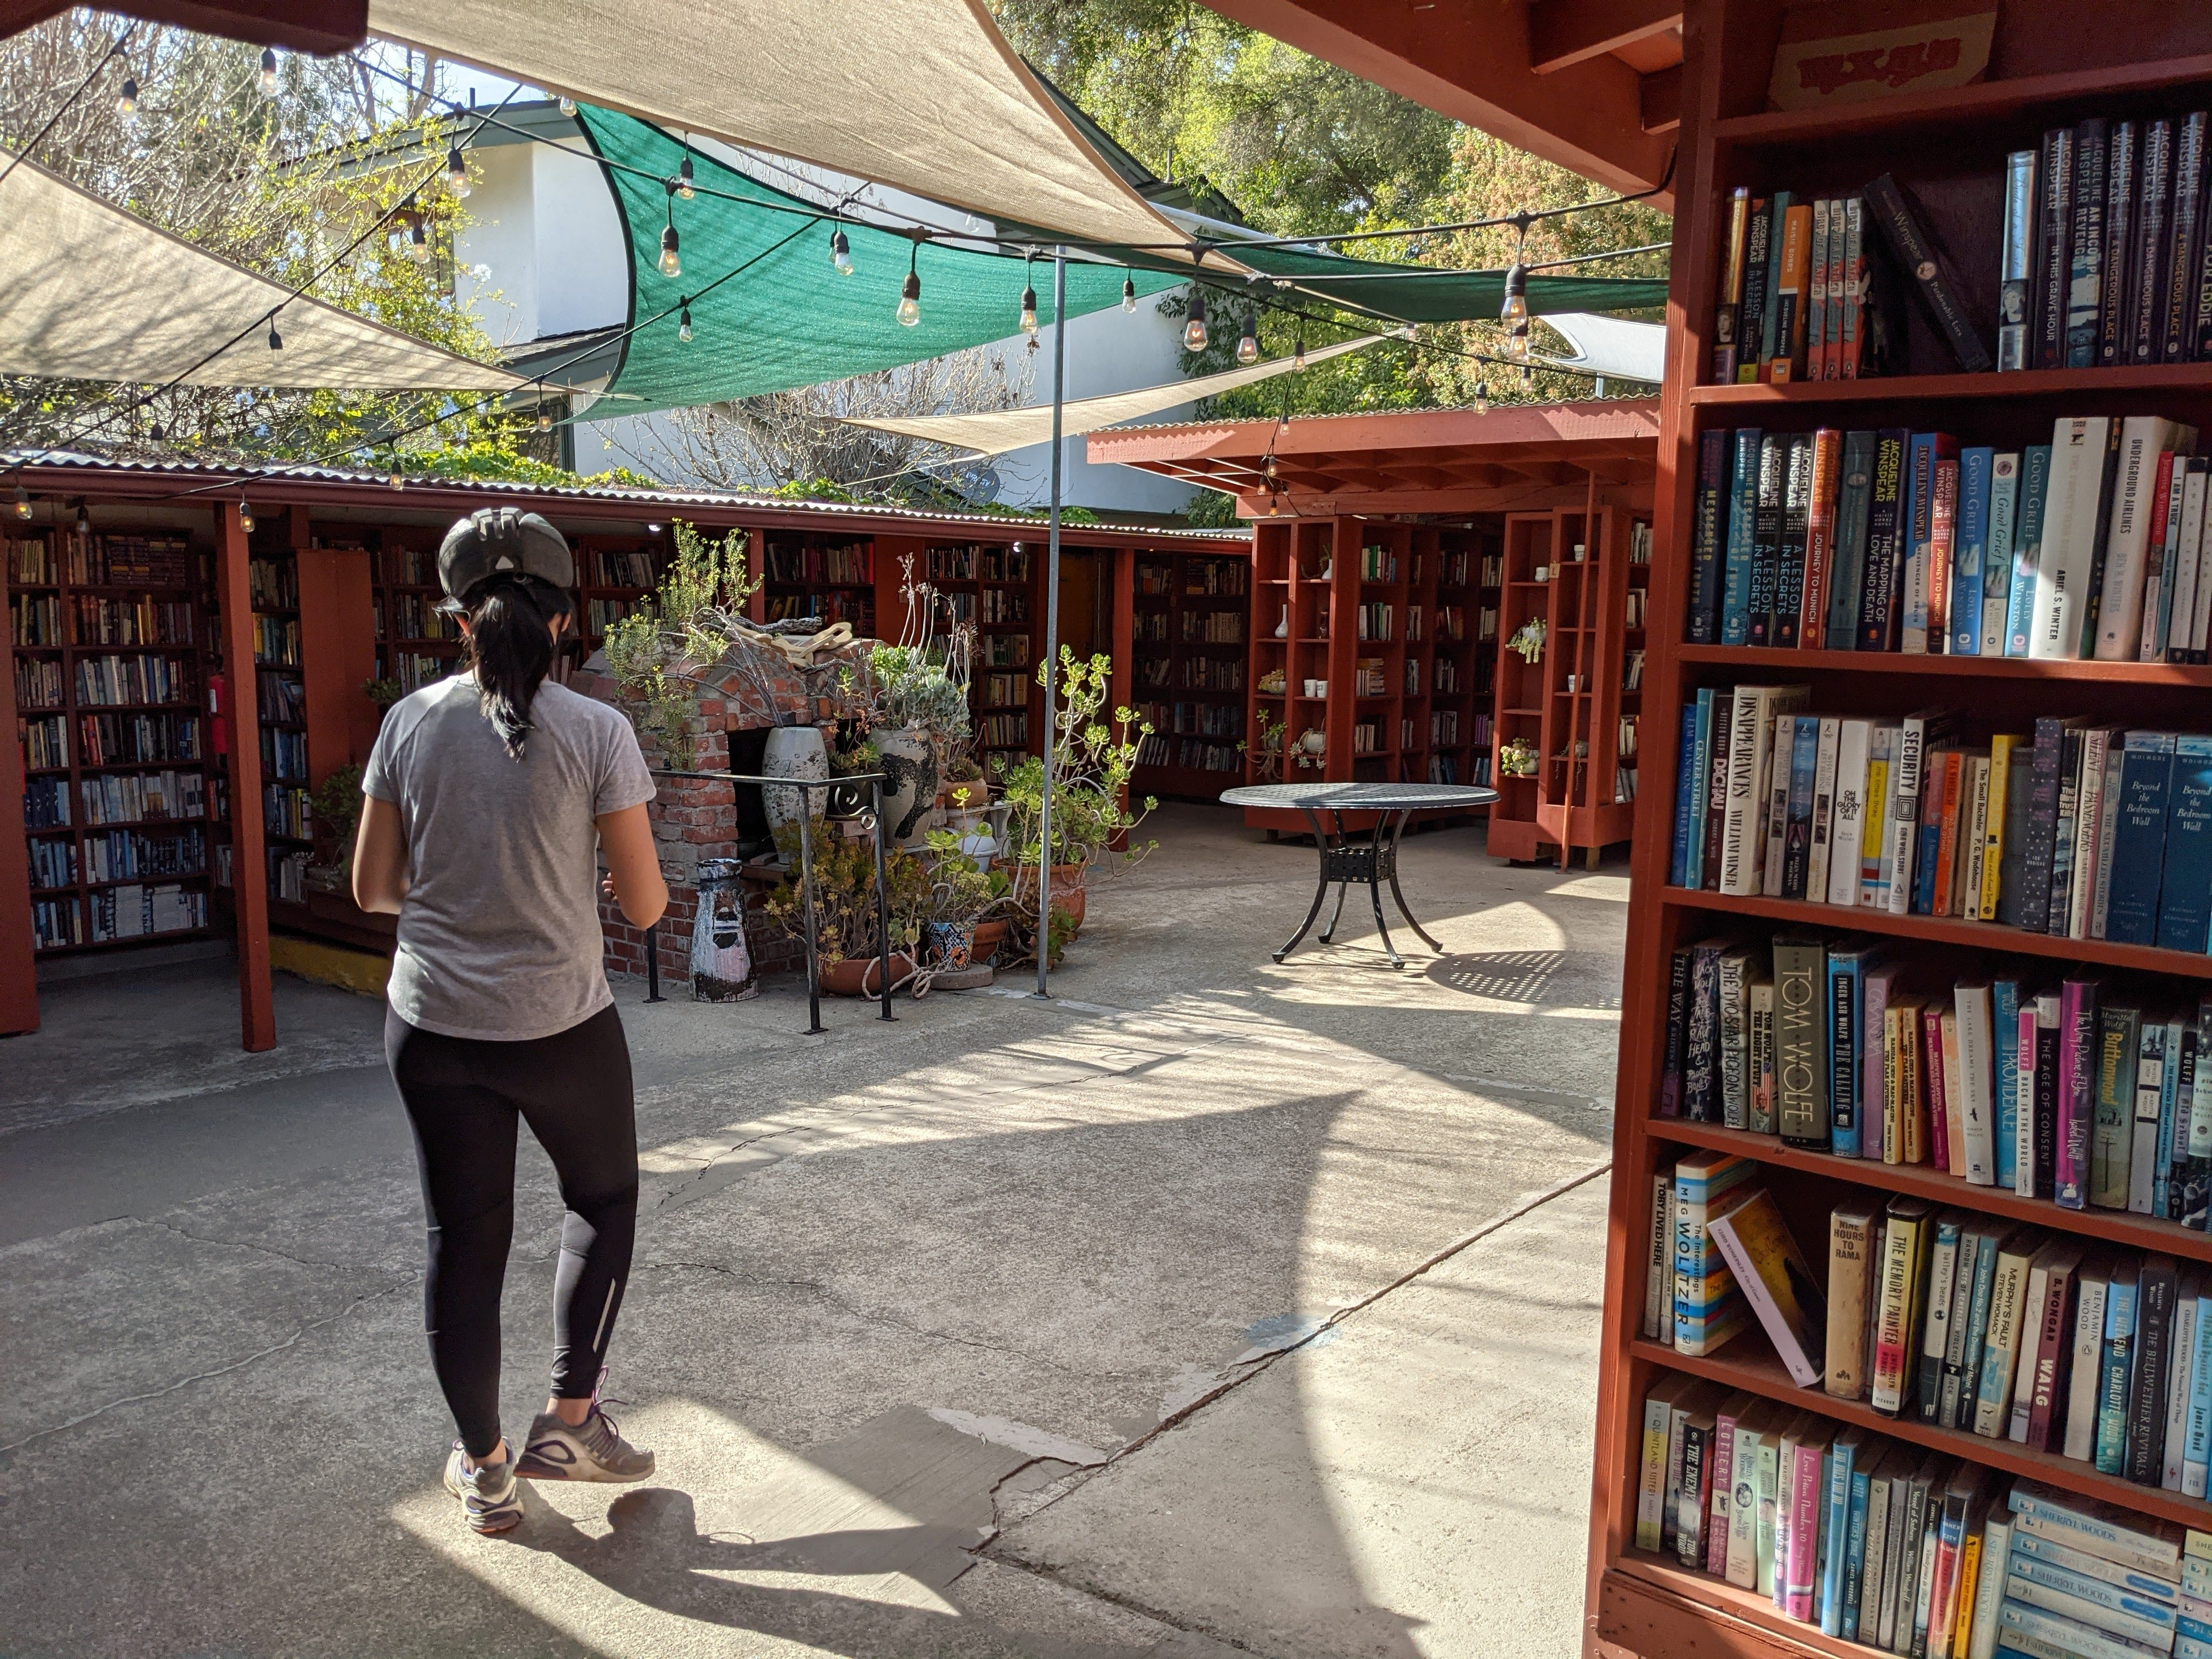 Woman walking around looking at the books in the outdoor bookstore Barth's Books in Ojai California